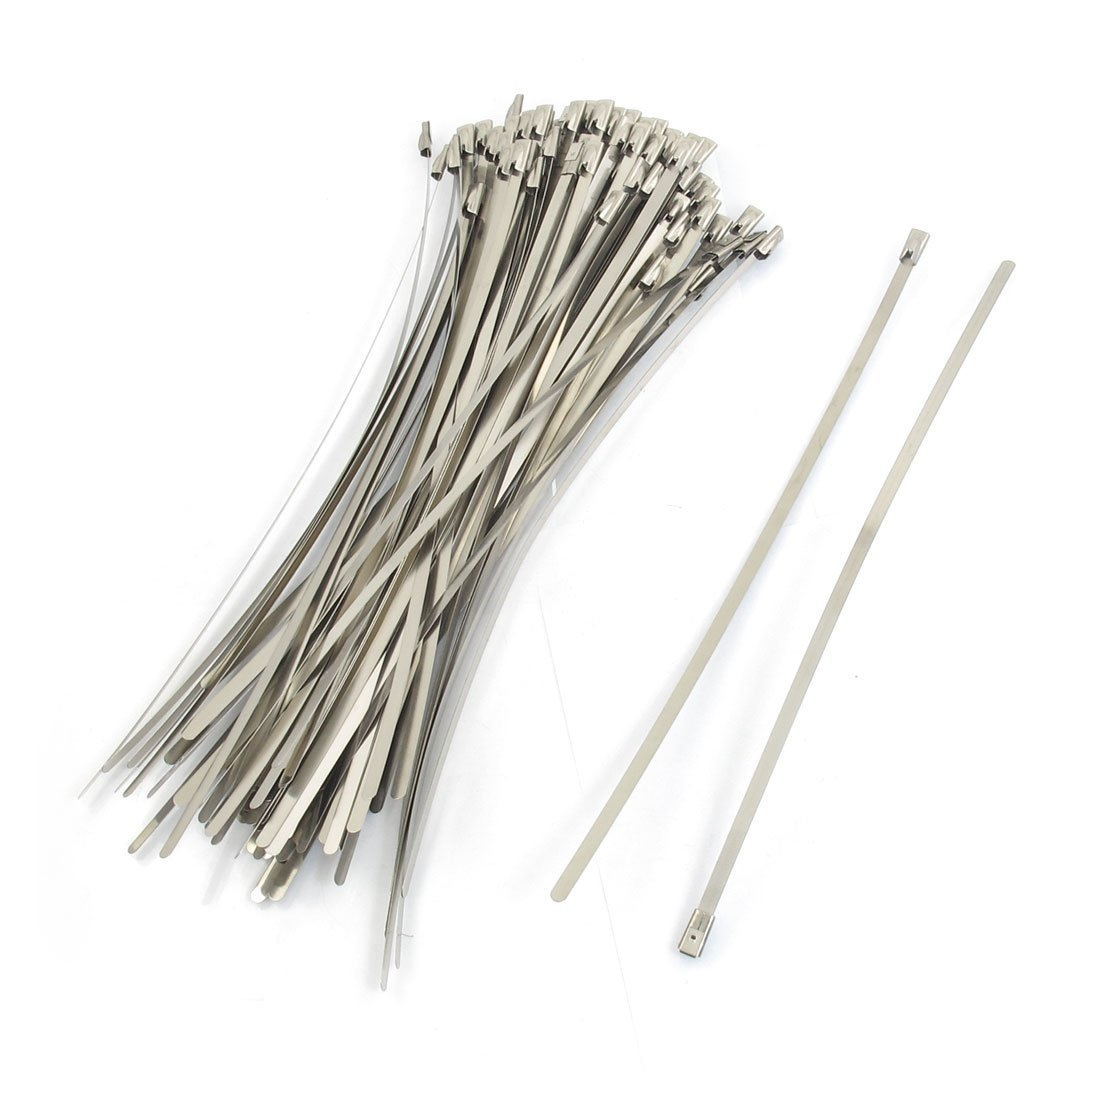 uxcell 4.6x250mm Self Locking Stainless Steel Hose Cable Ties Clamps 100 Pcs